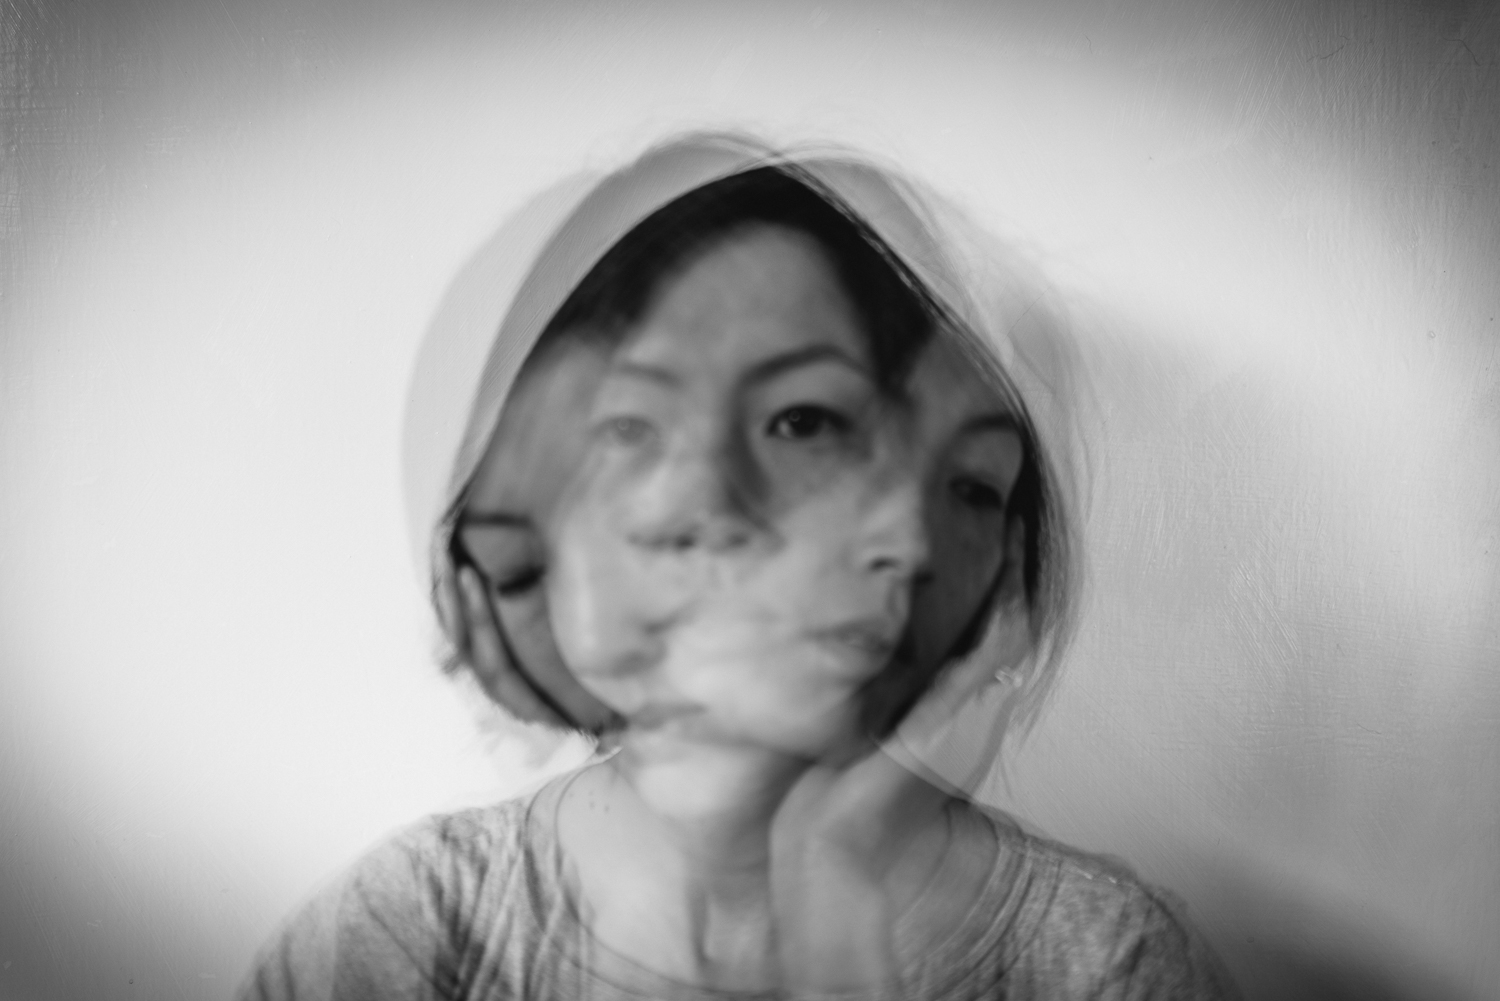 Different state of emotions in a self-portrait study by Diana Hagues Photography